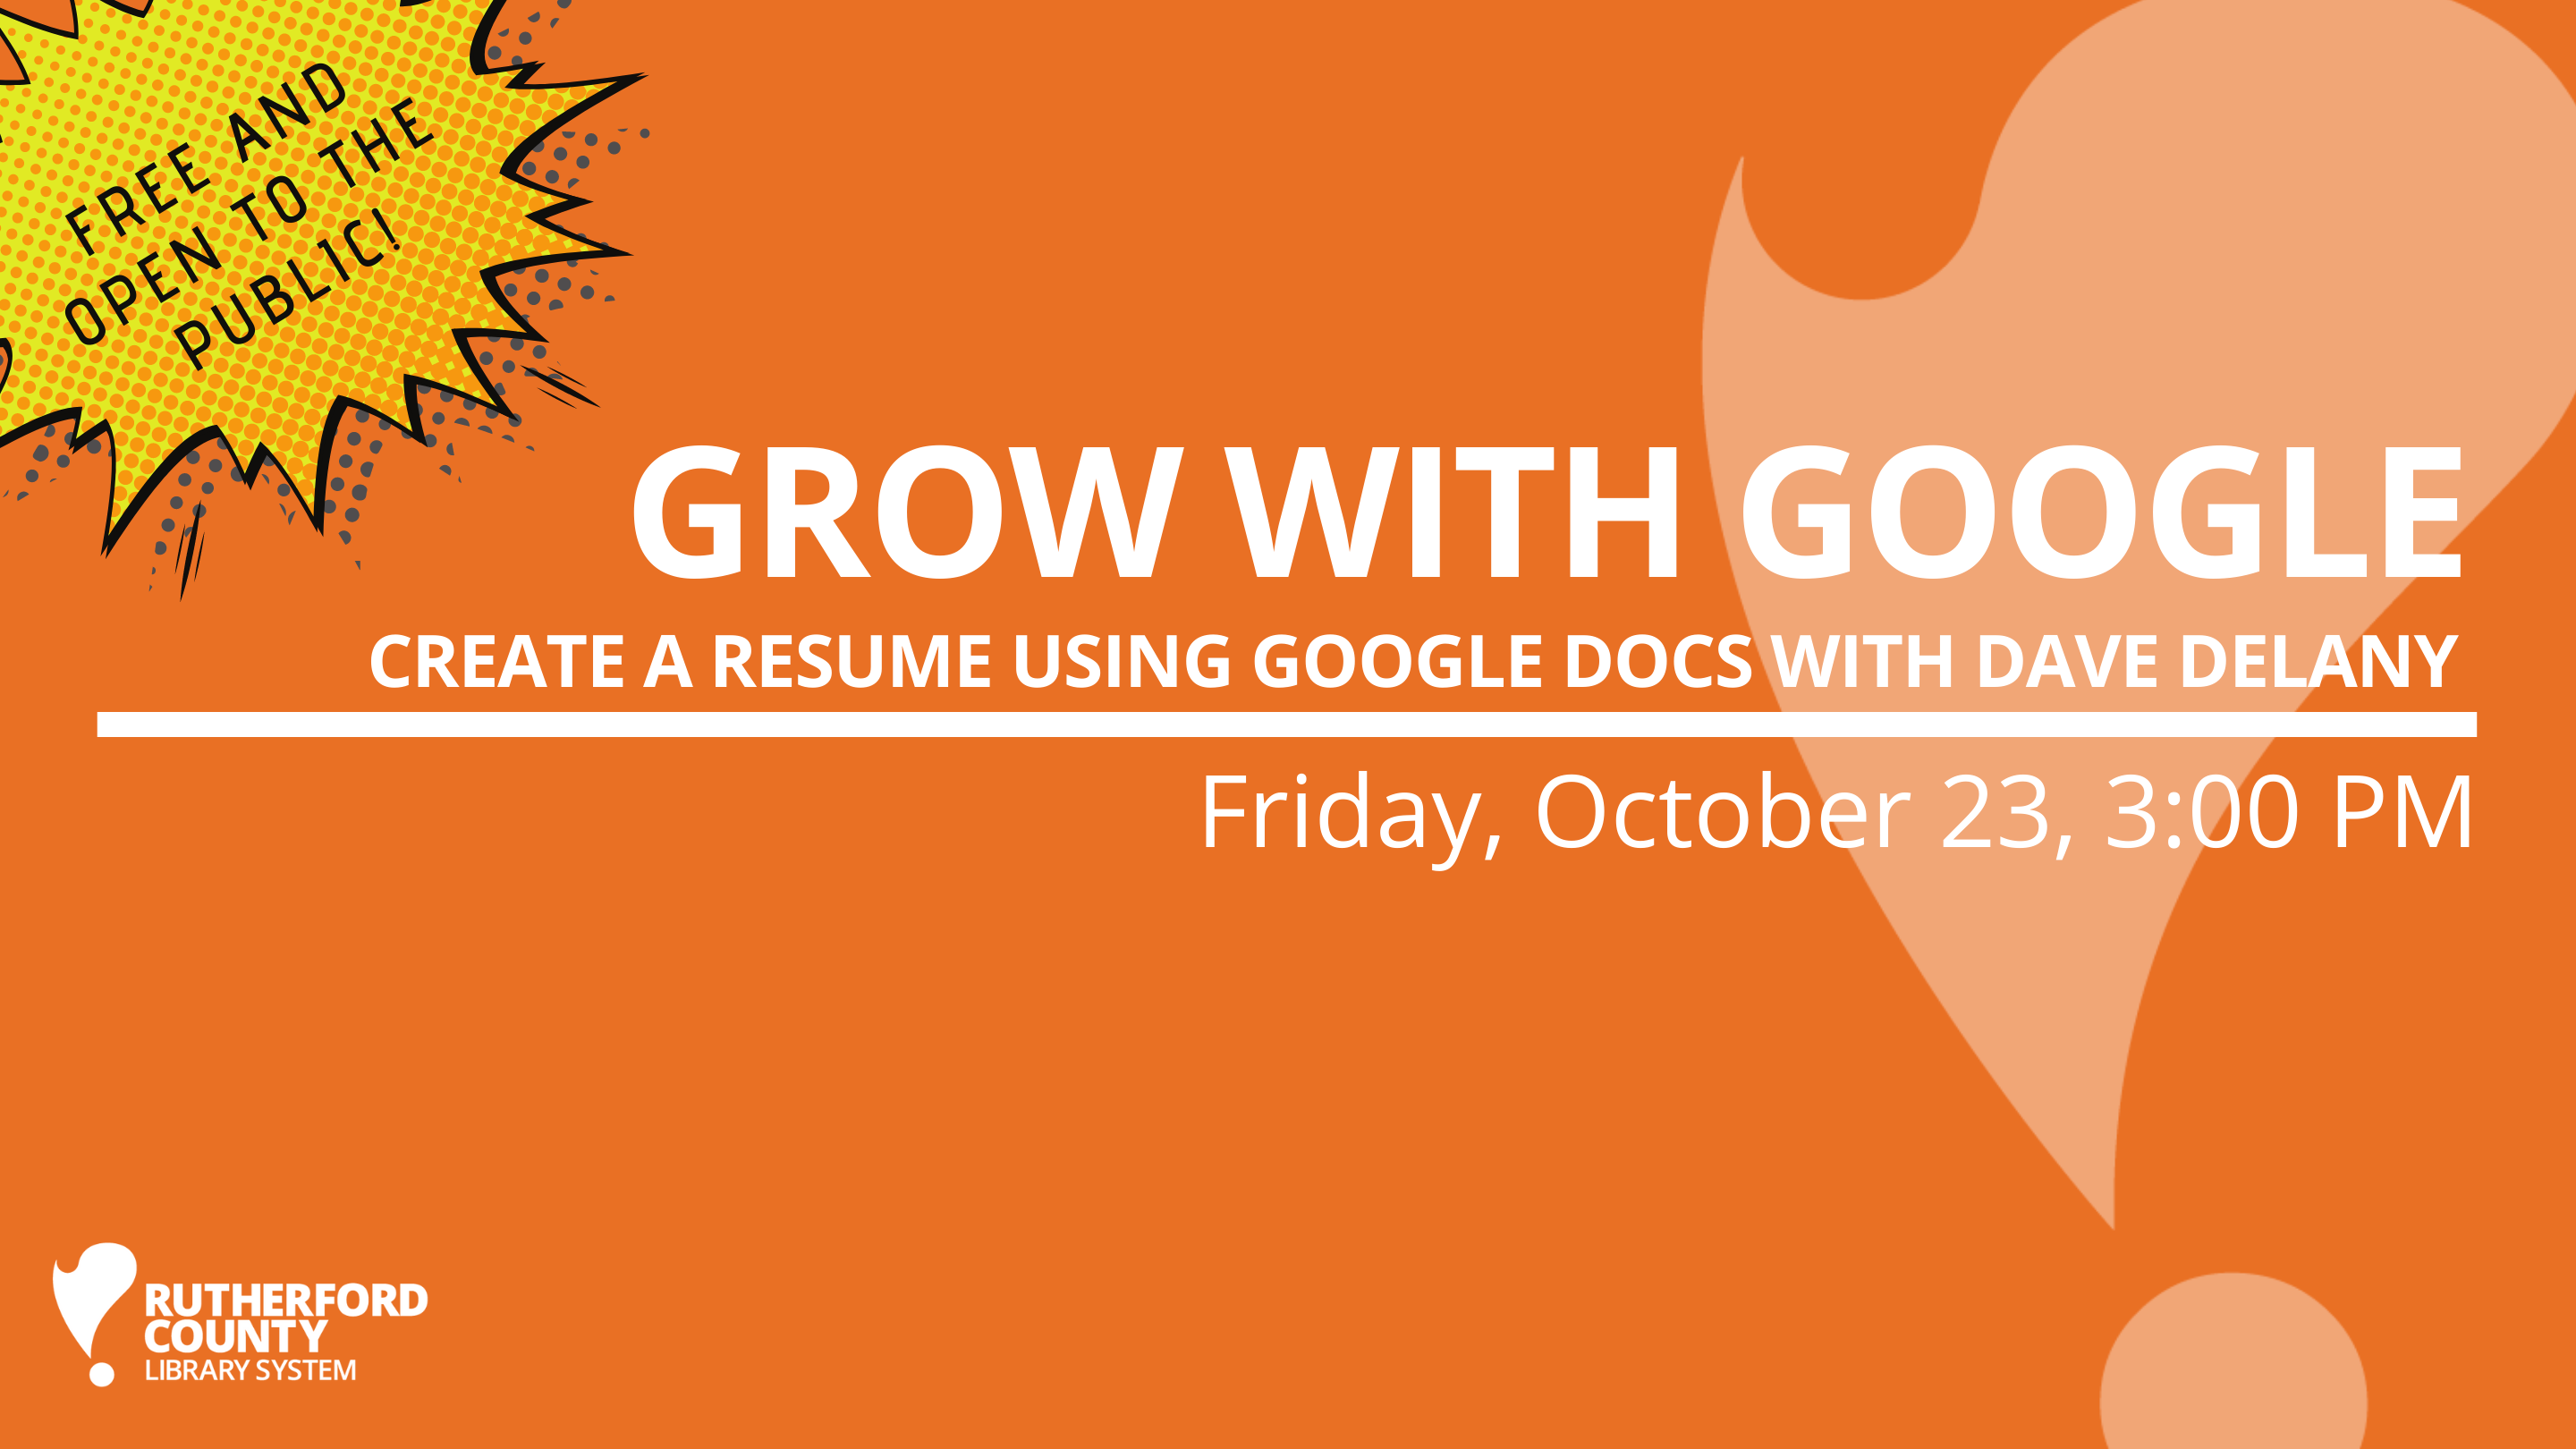 Grow with Google: Create a Resume Using Google Docs